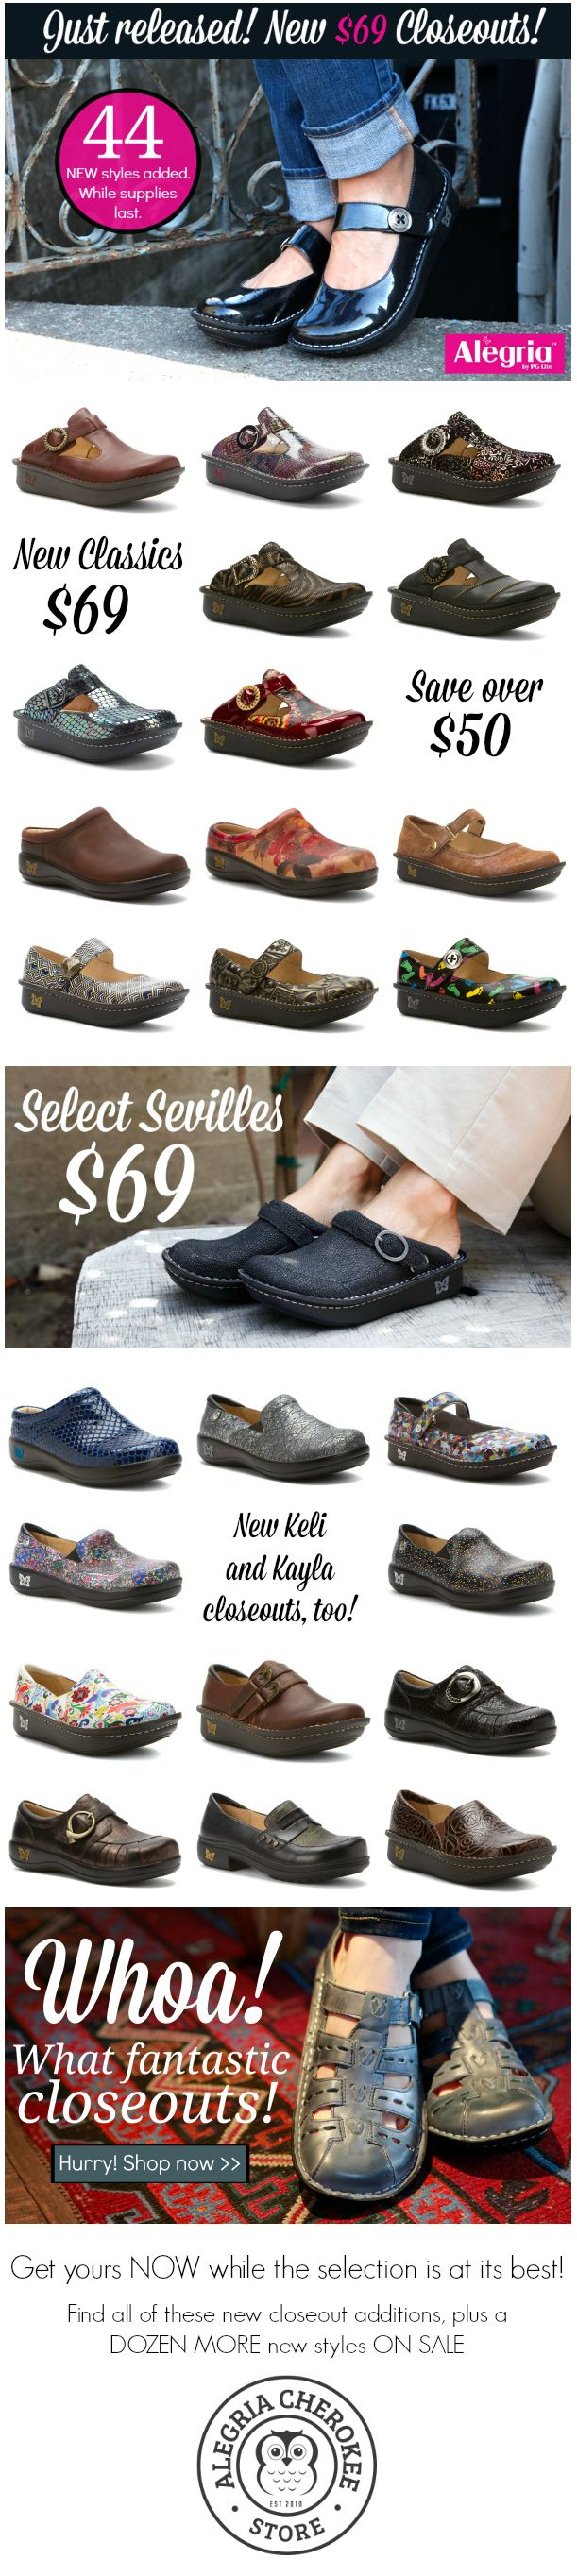 Our Biggest Semi-Annual Clearance Sale Ever Starts Now - 44 Brand New Alegria Closeouts!  Hurry in now or get them online while the selection is at its best! | Alegria Cherokee Store #AlegriaShoes #closeouts #sale #memorialday #CLT #CharlotteNC #AlegriaCherokee